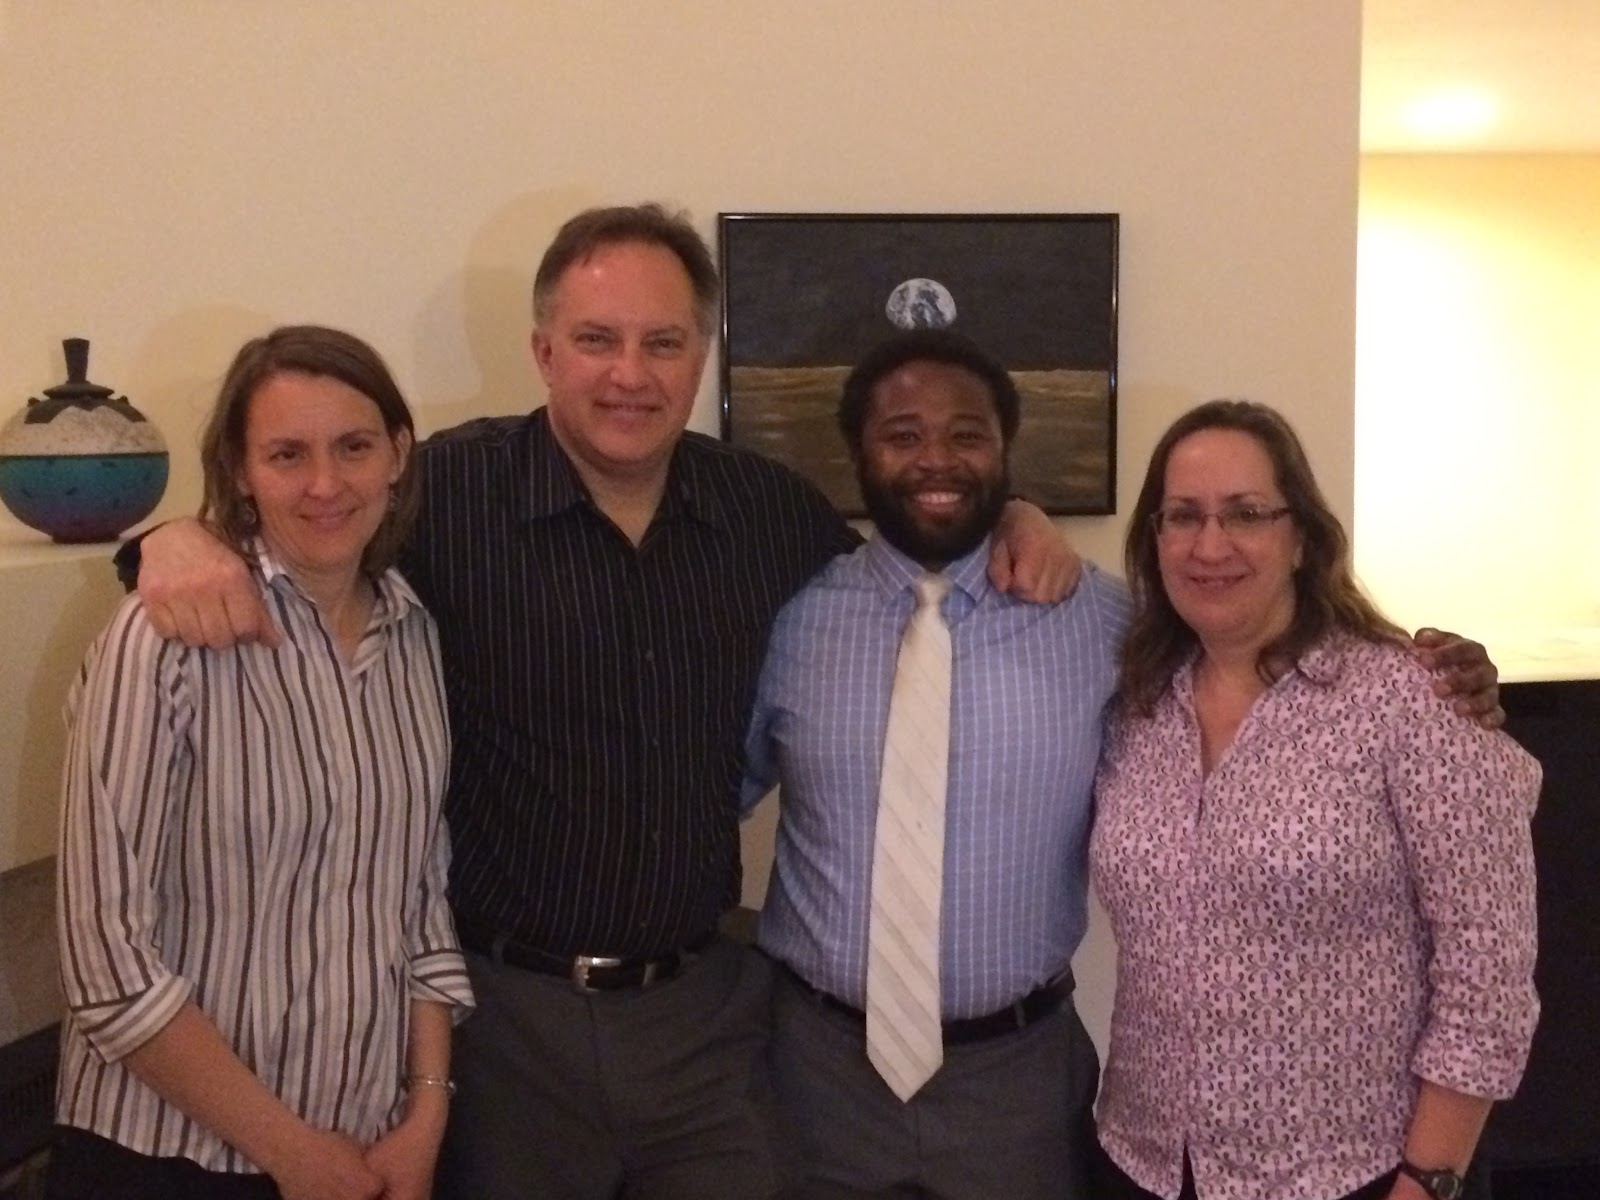 Dr. Mosby and his three advisors posing together happily.